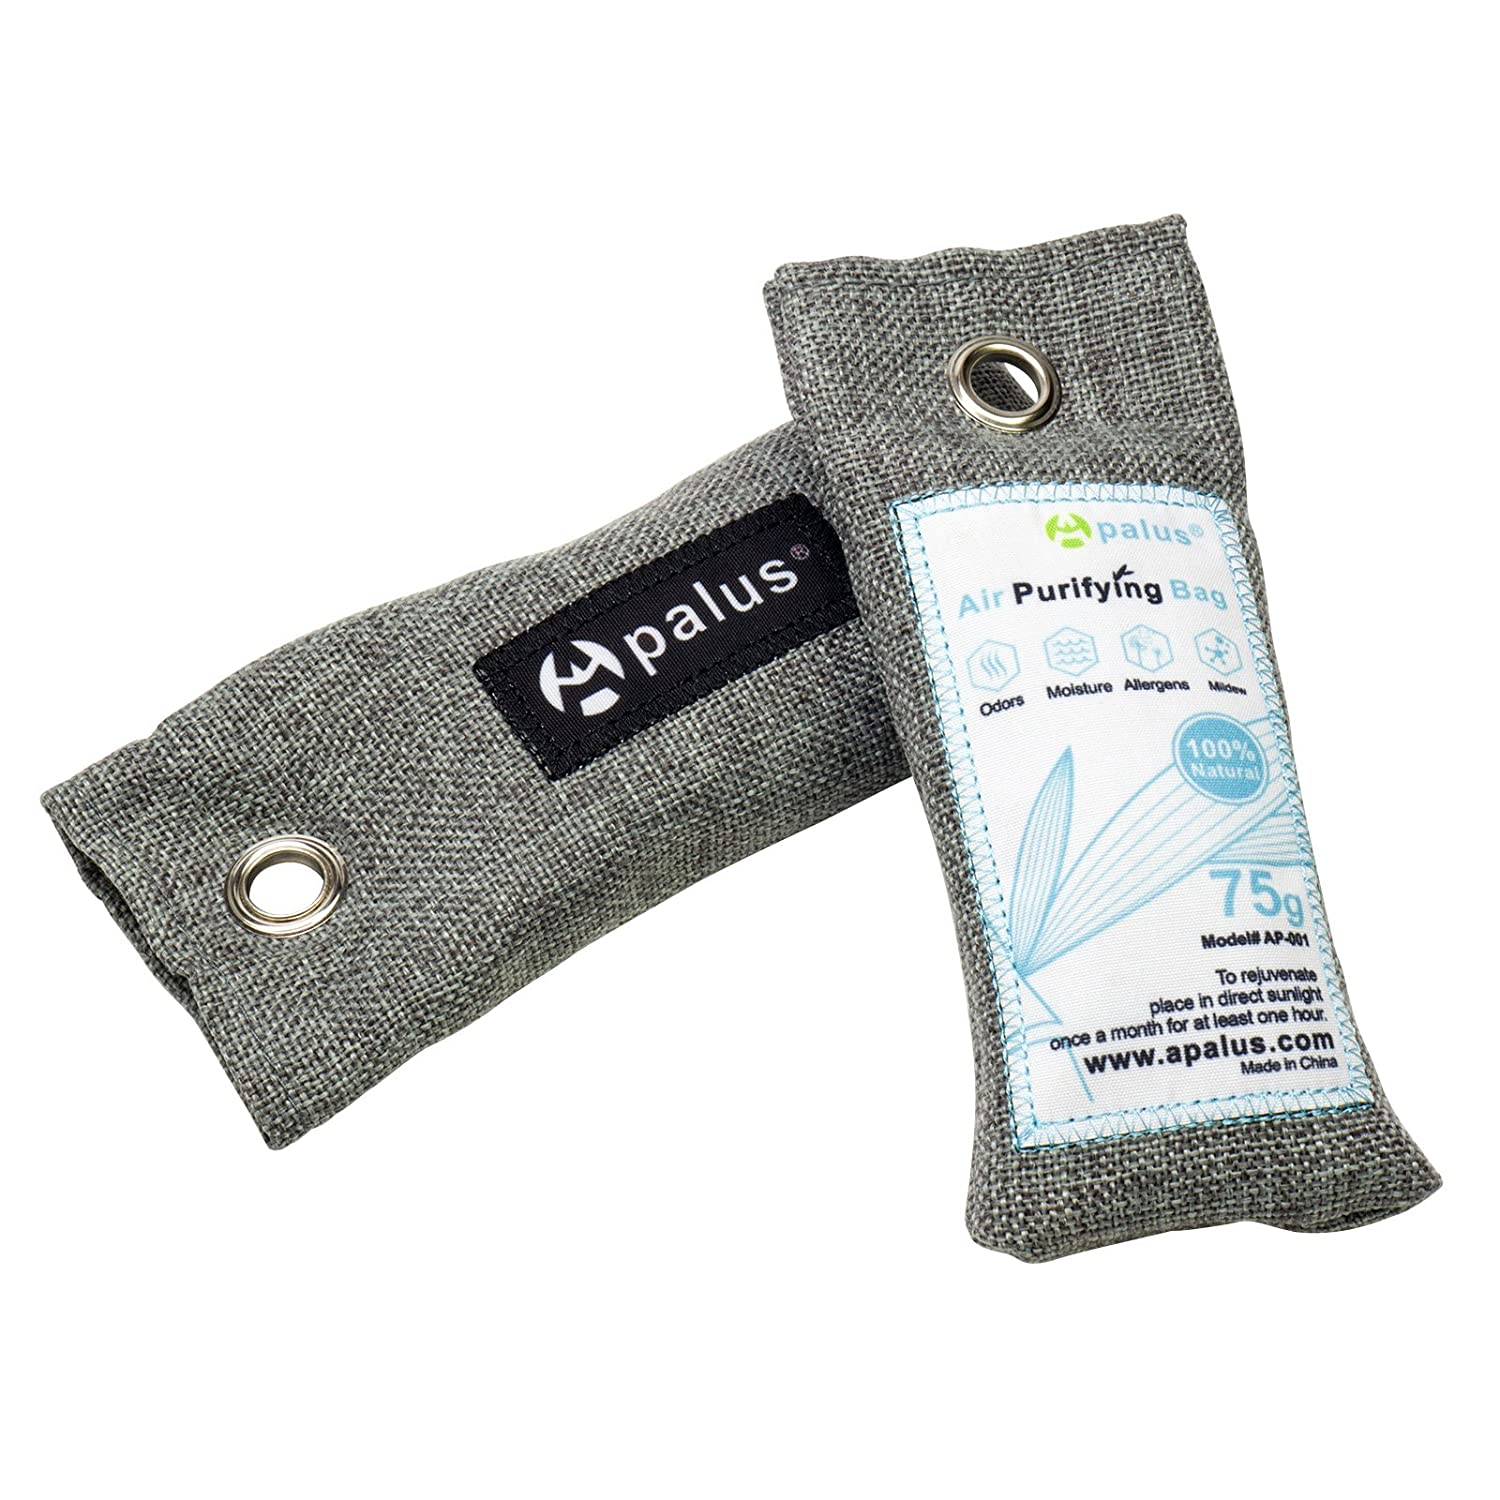 Apalus Mini Air Purifier Bags, Bamboo Activated Charcoal Air Freshener,  Odor Eliminator For Shoes | Gym Bags |Closet -100% Natural & Chemical Free